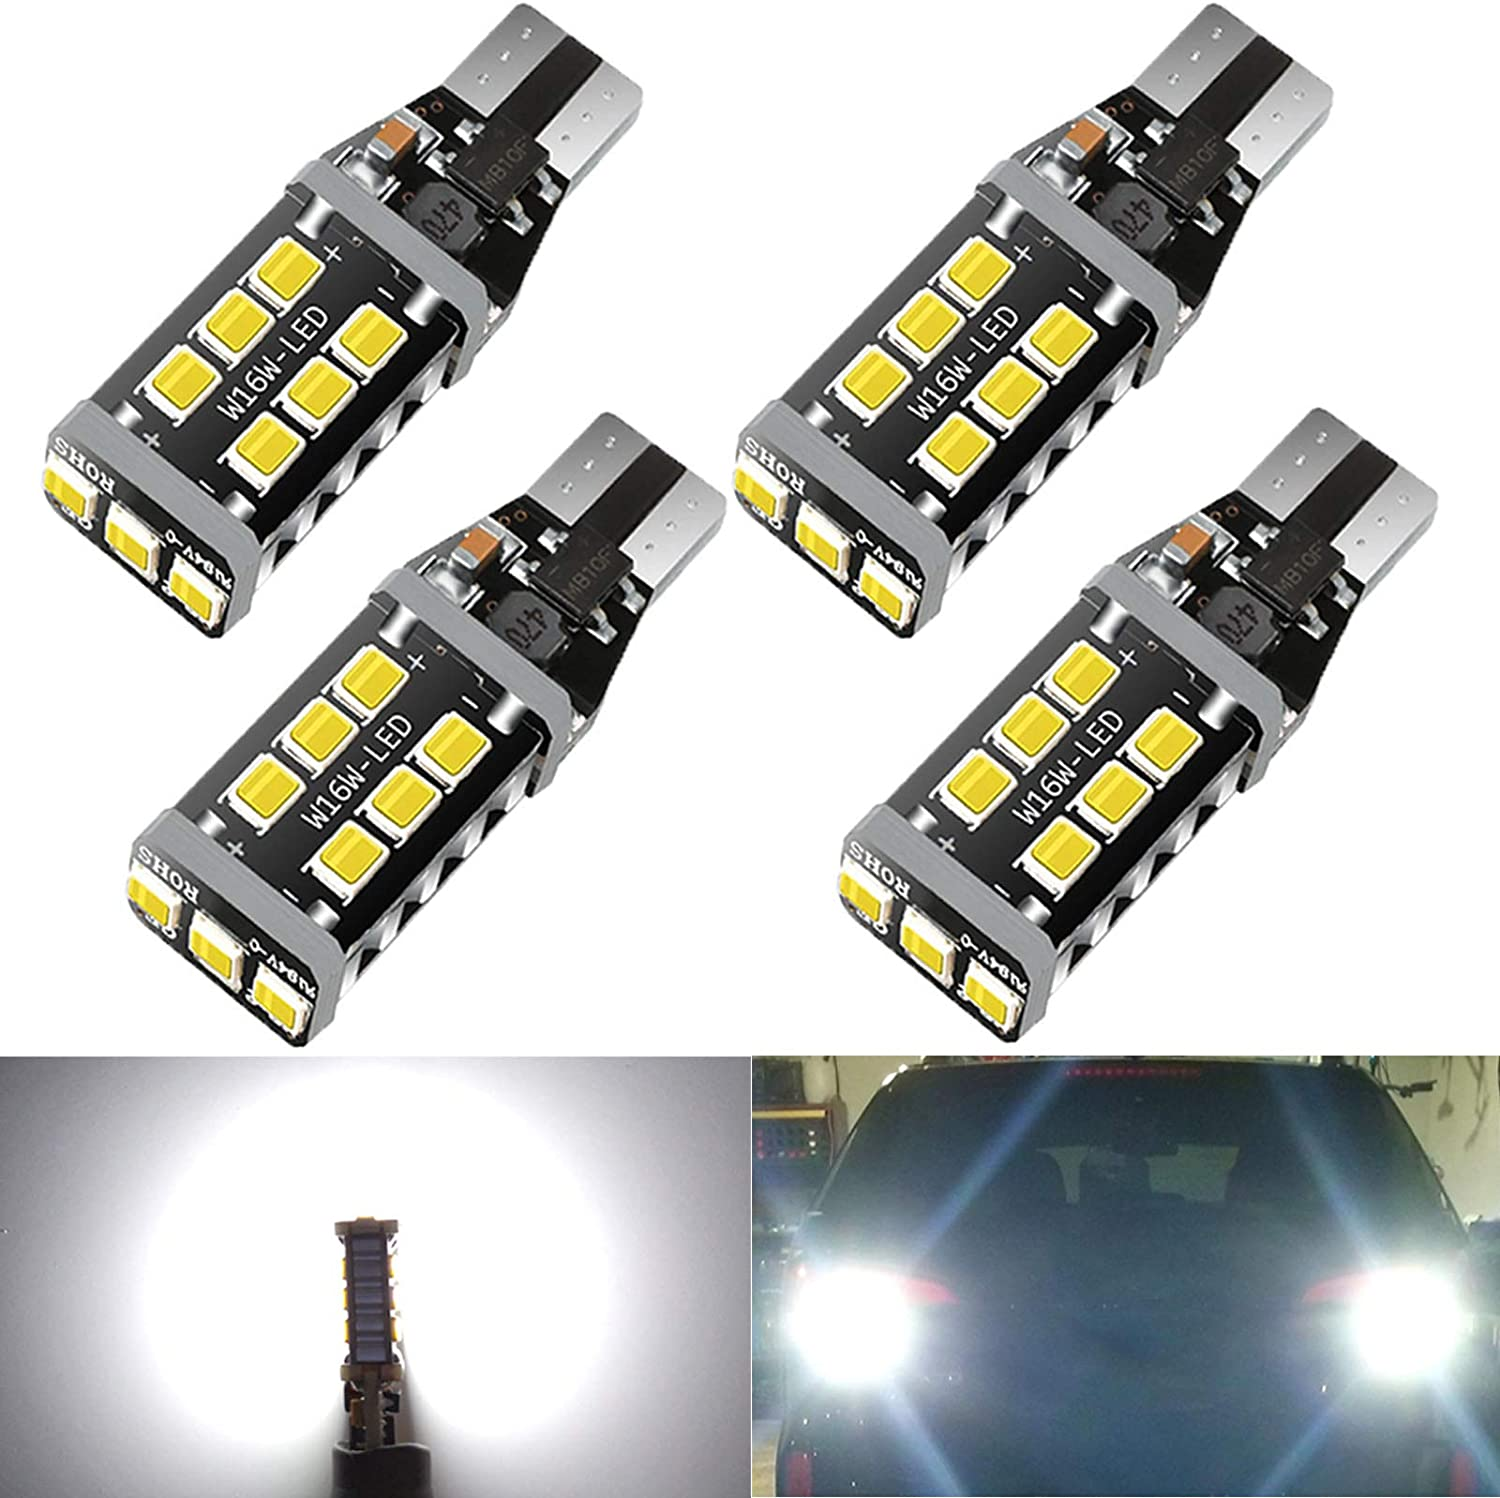 4x W16W T15 921 Rear 15 SMD LED Canbus REVERSE WHITE Lamps Light Bulbs 6000K